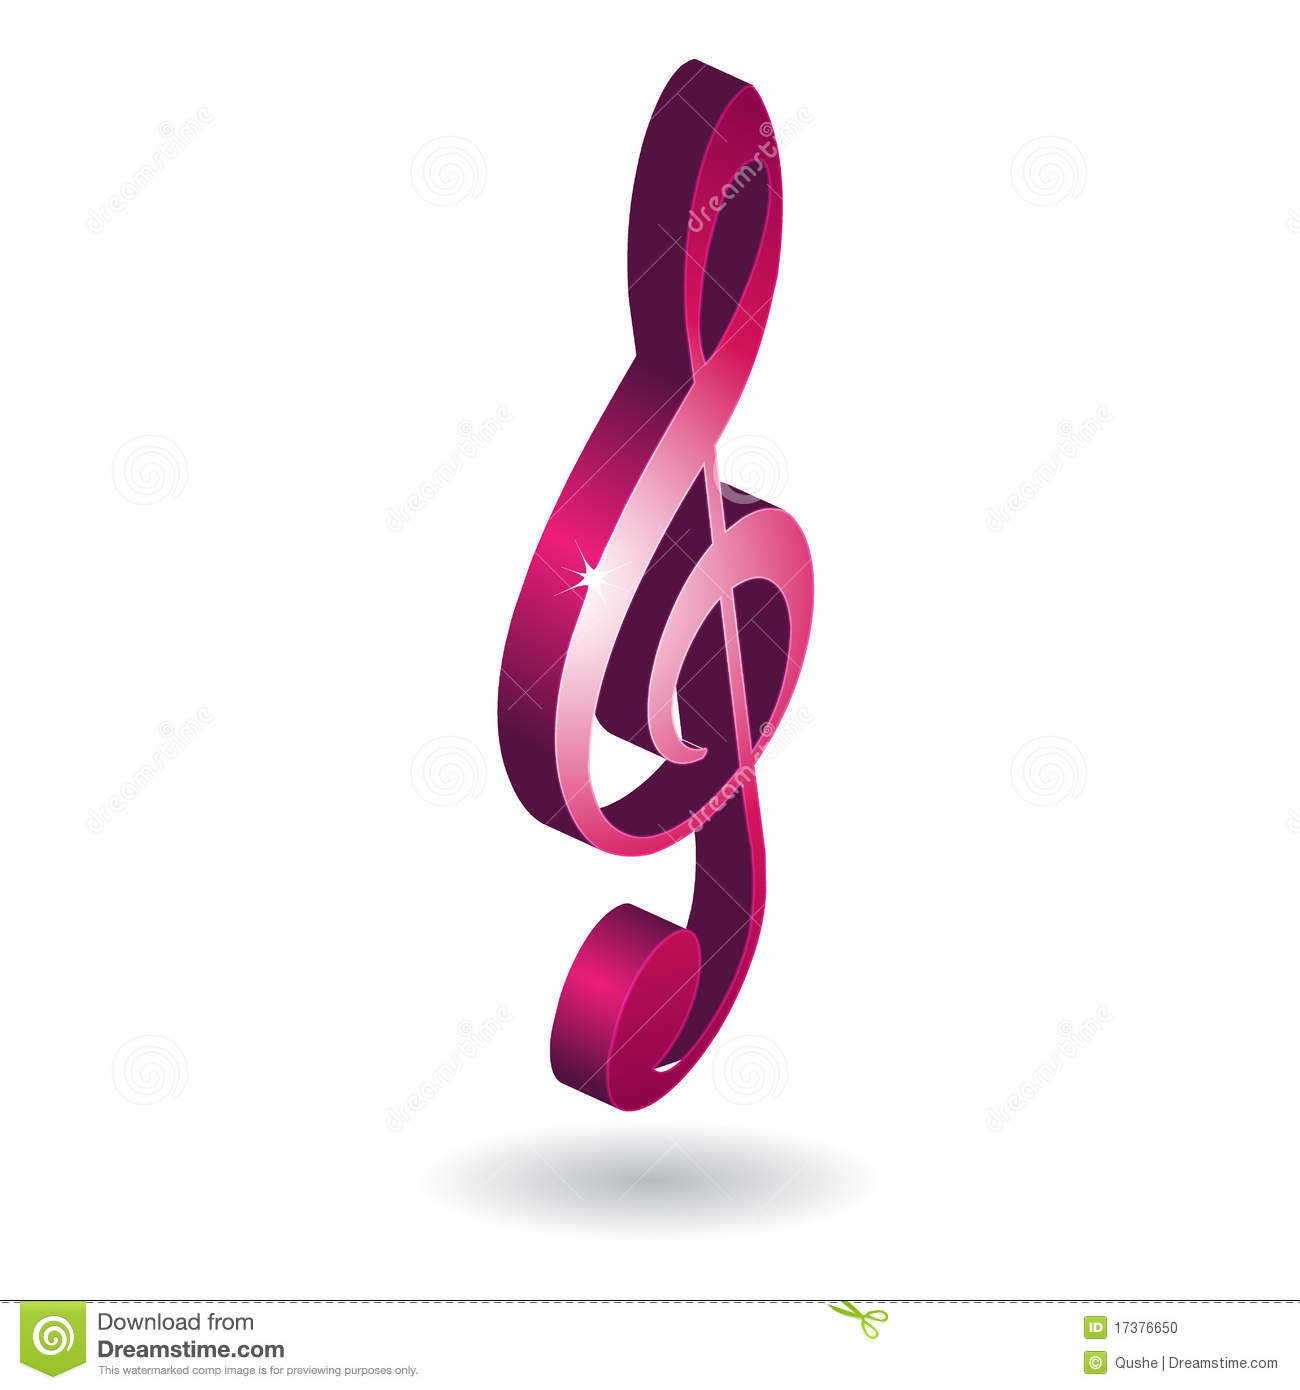 Music symbols wallpaper impremedia music symbol wallpaper gallery source 3d20colorful20music20notes20wallpaper biocorpaavc Images